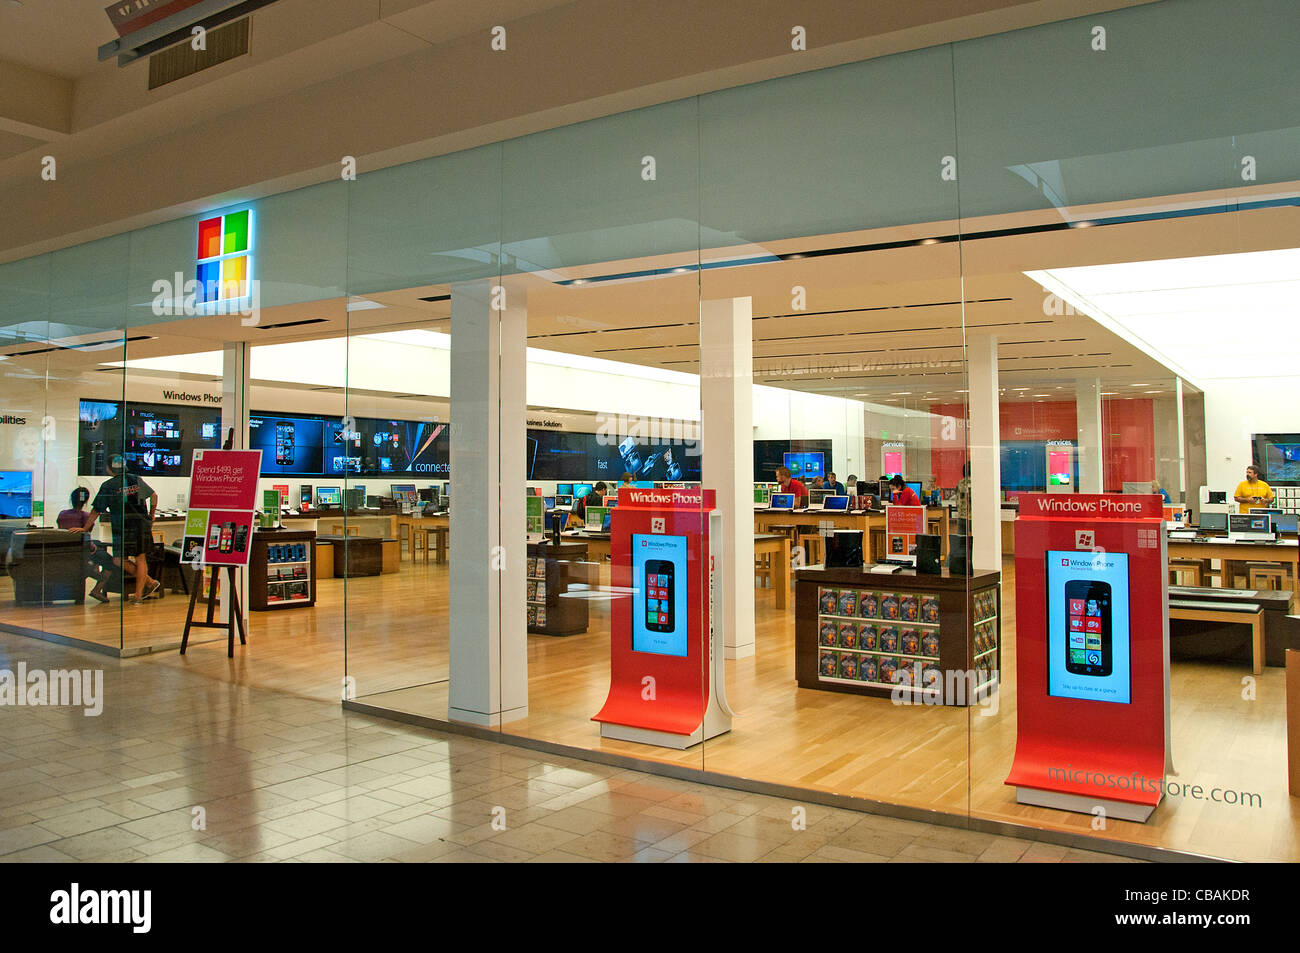 Windows Phone Microsoft shopping mall shop store computer Phone United States - Stock Image